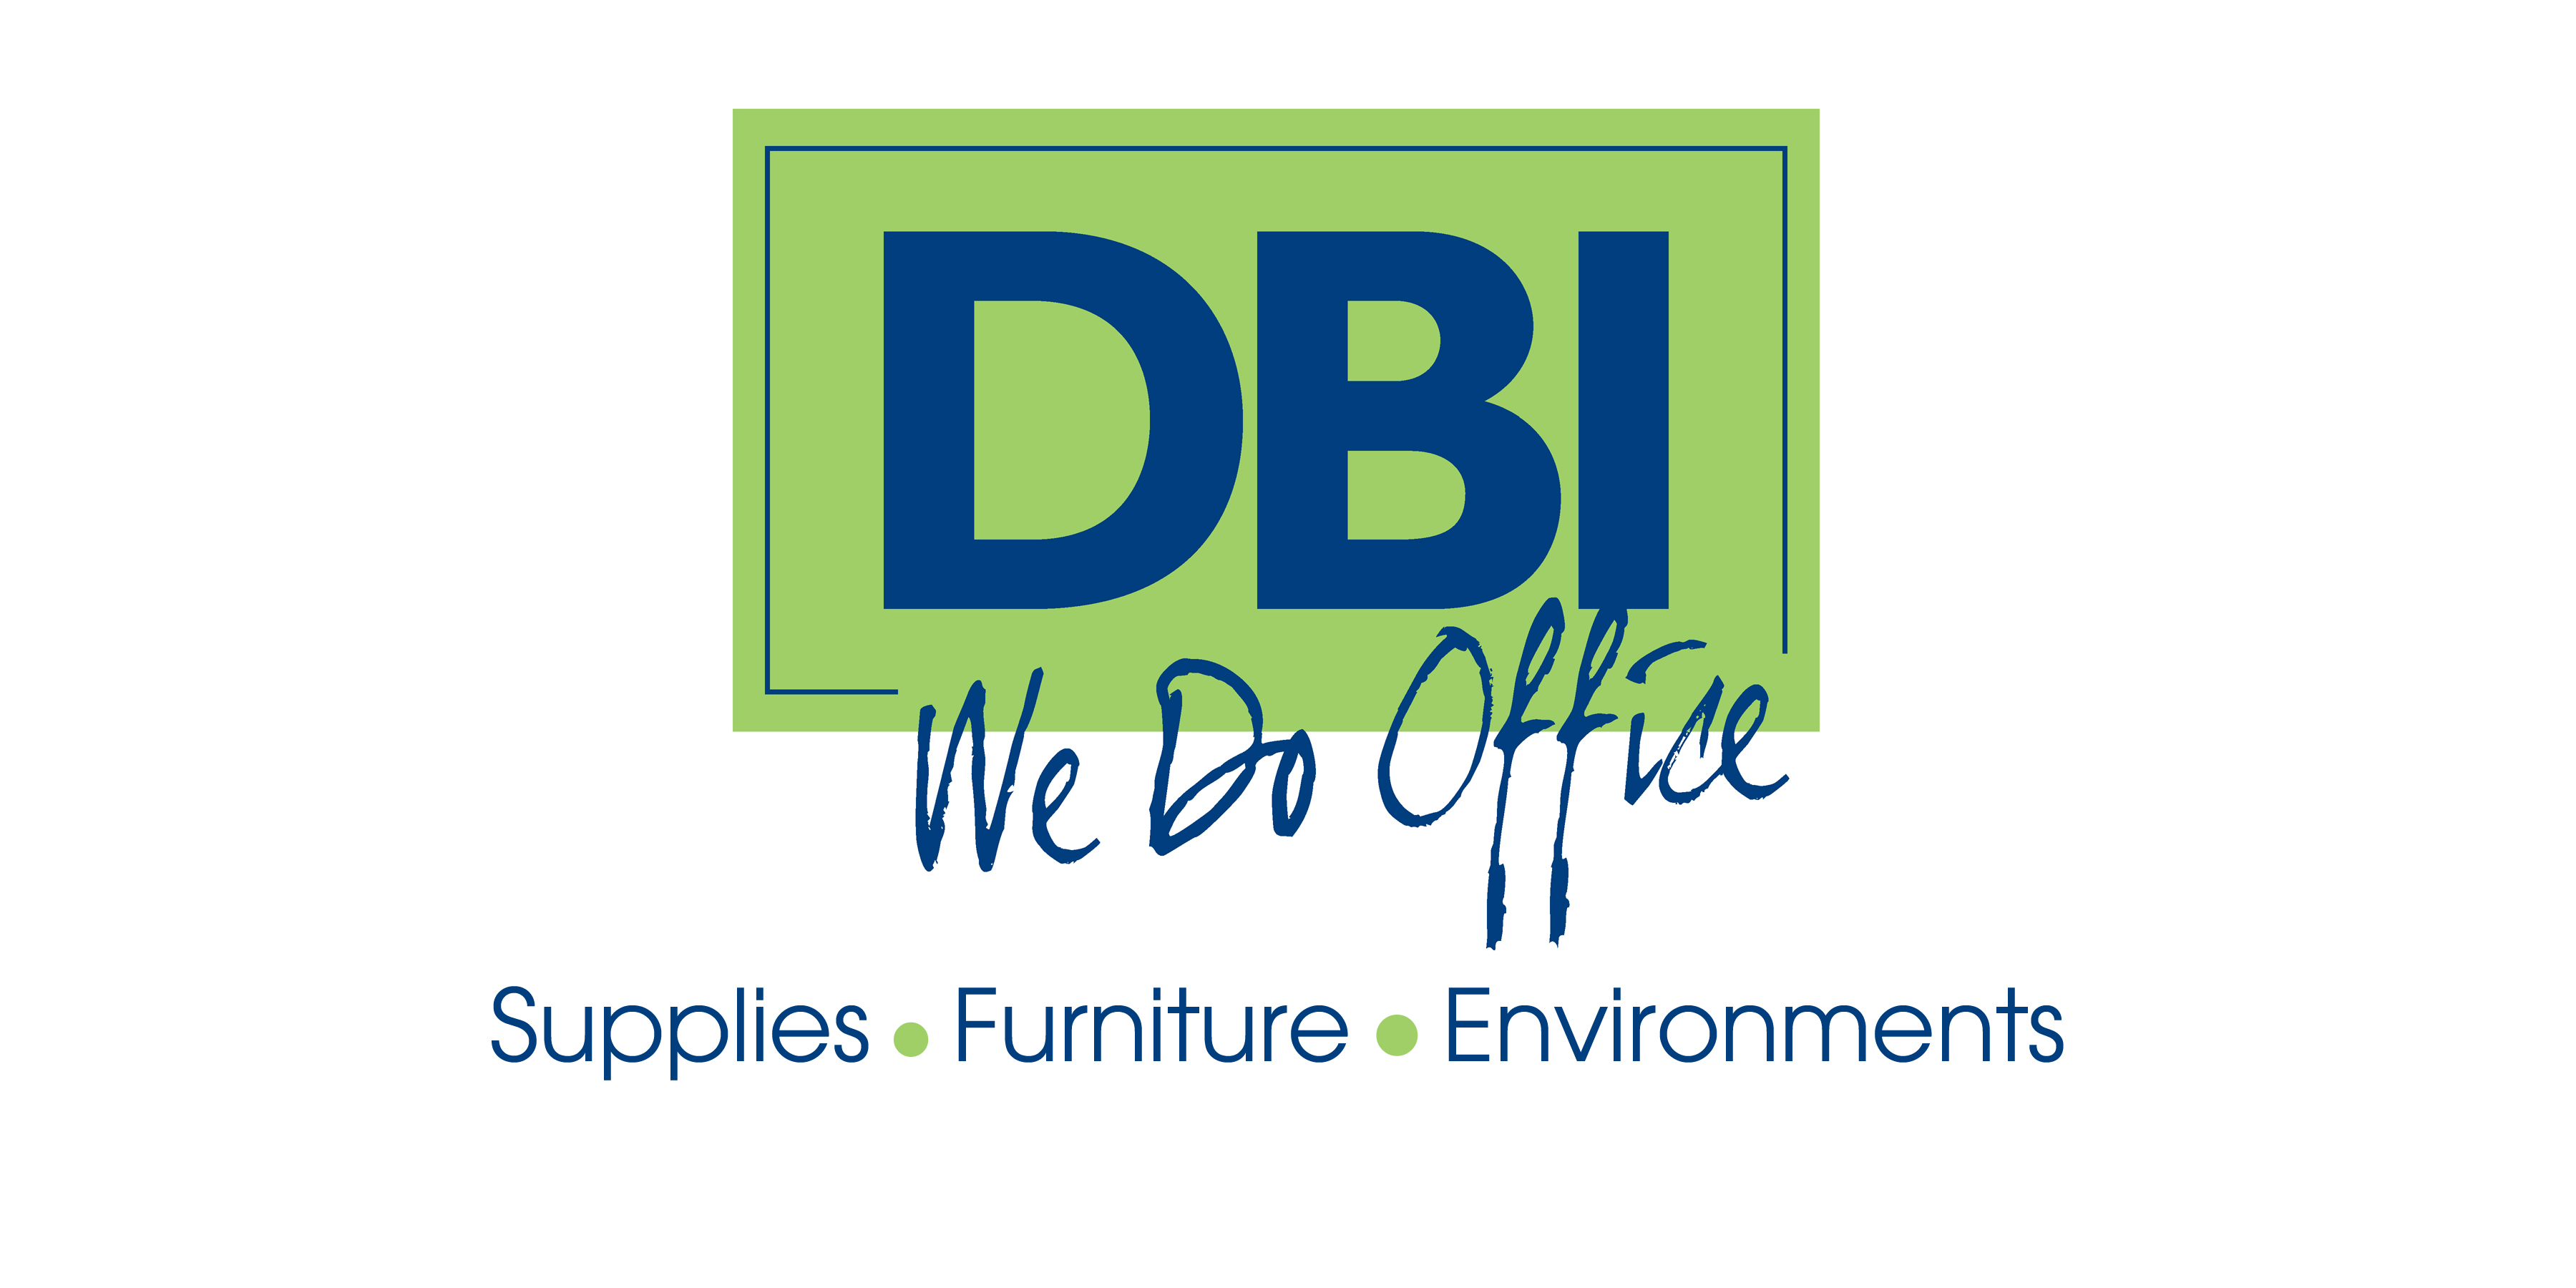 DBI SUPPLIES FURNITURE ENVIRONMENTS